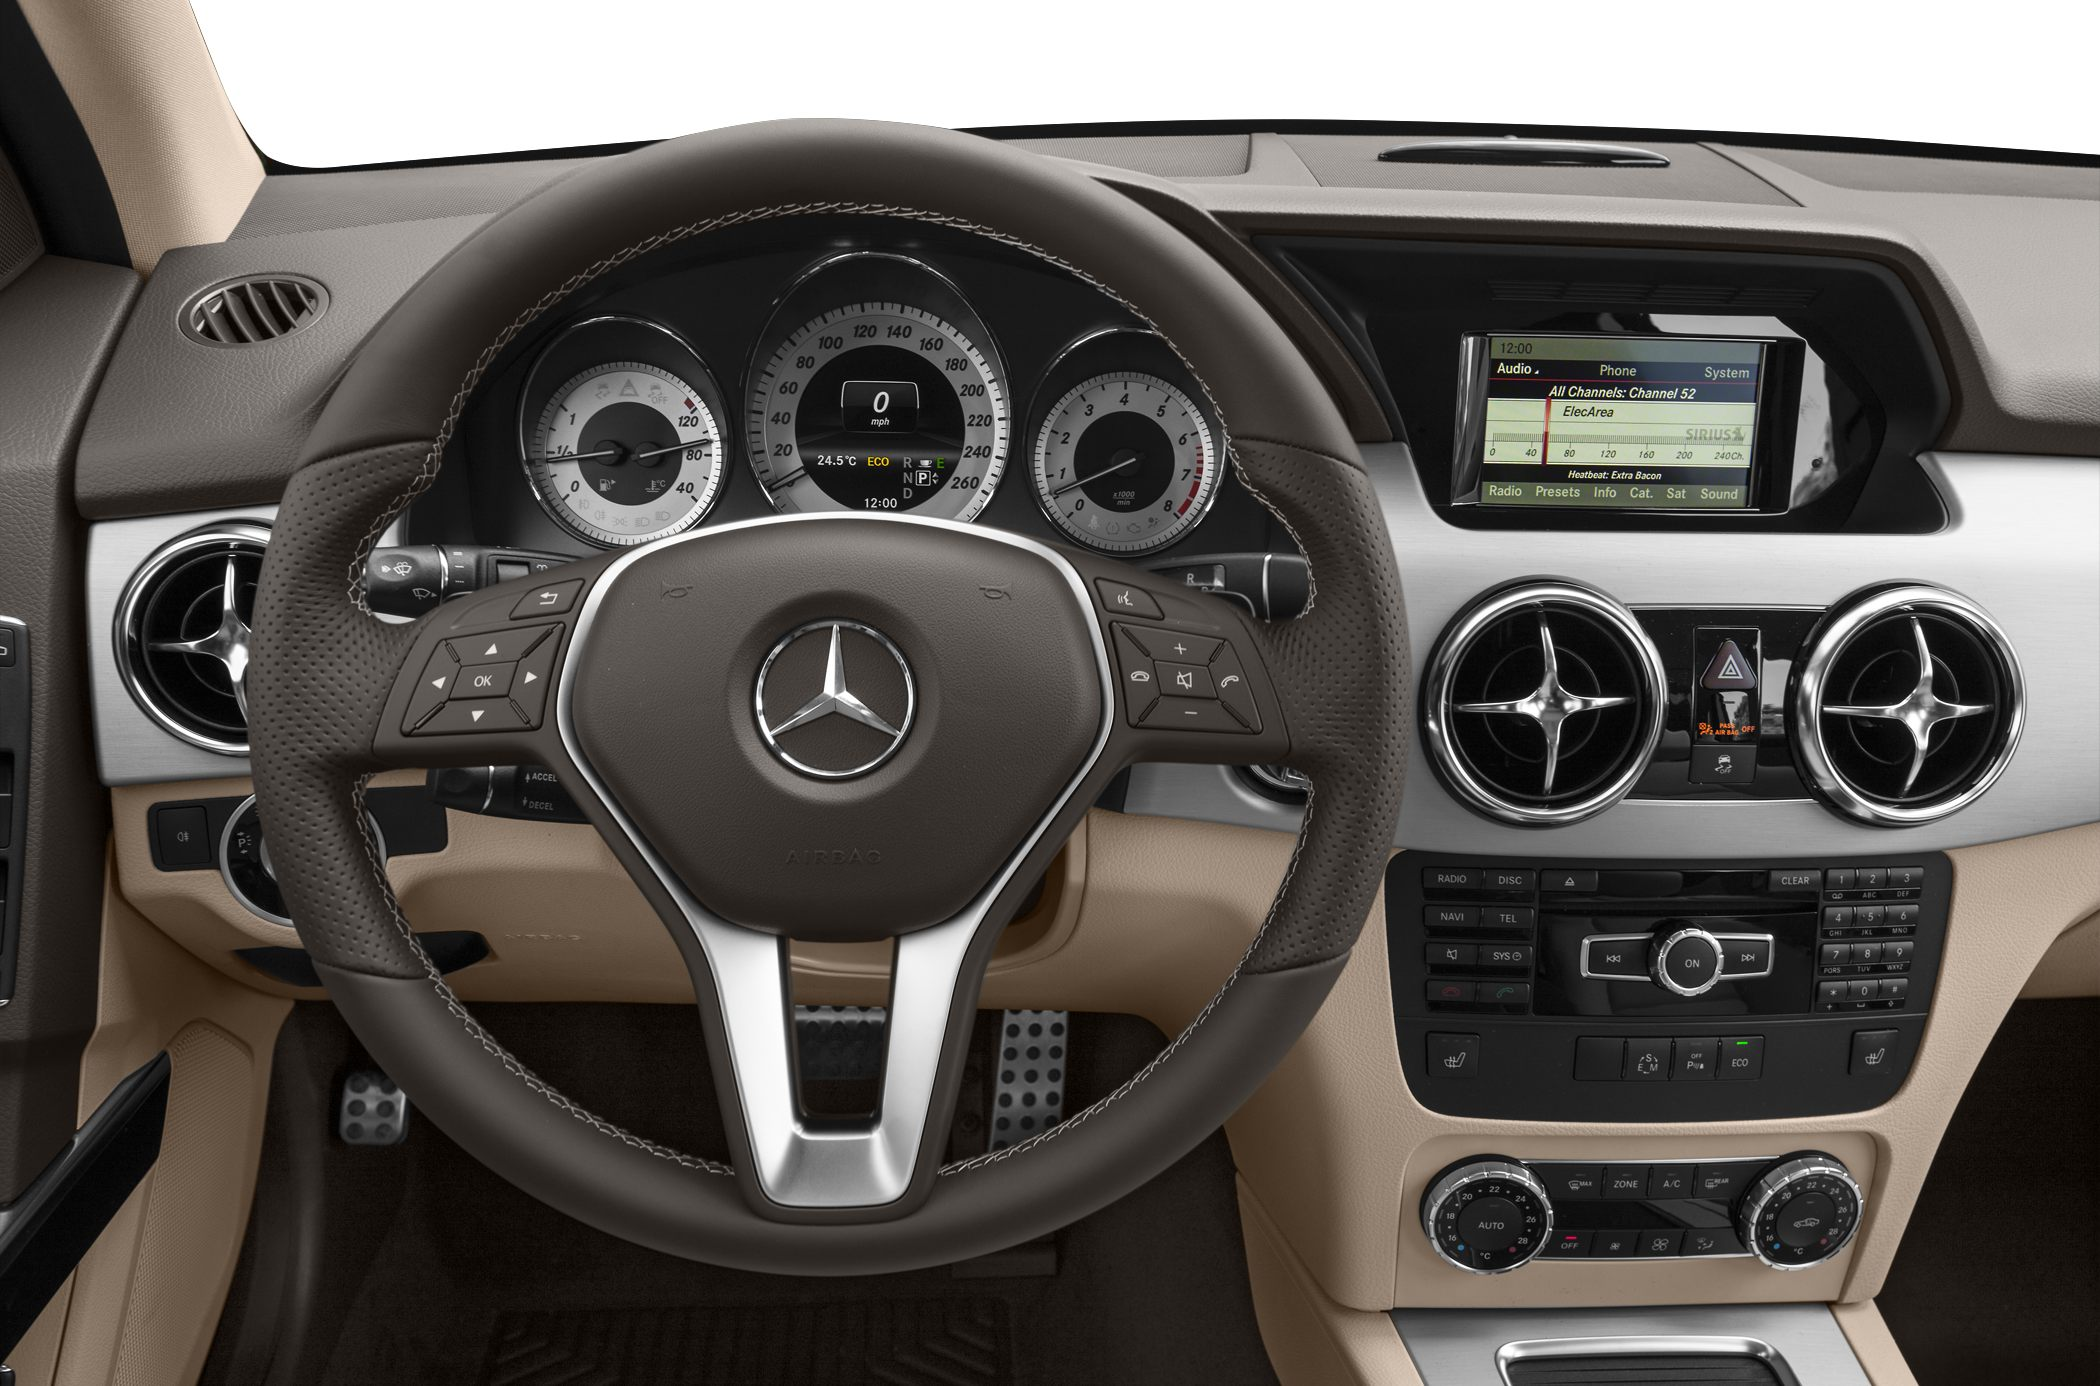 2015 Mercedes-Benz GLK350 Interior